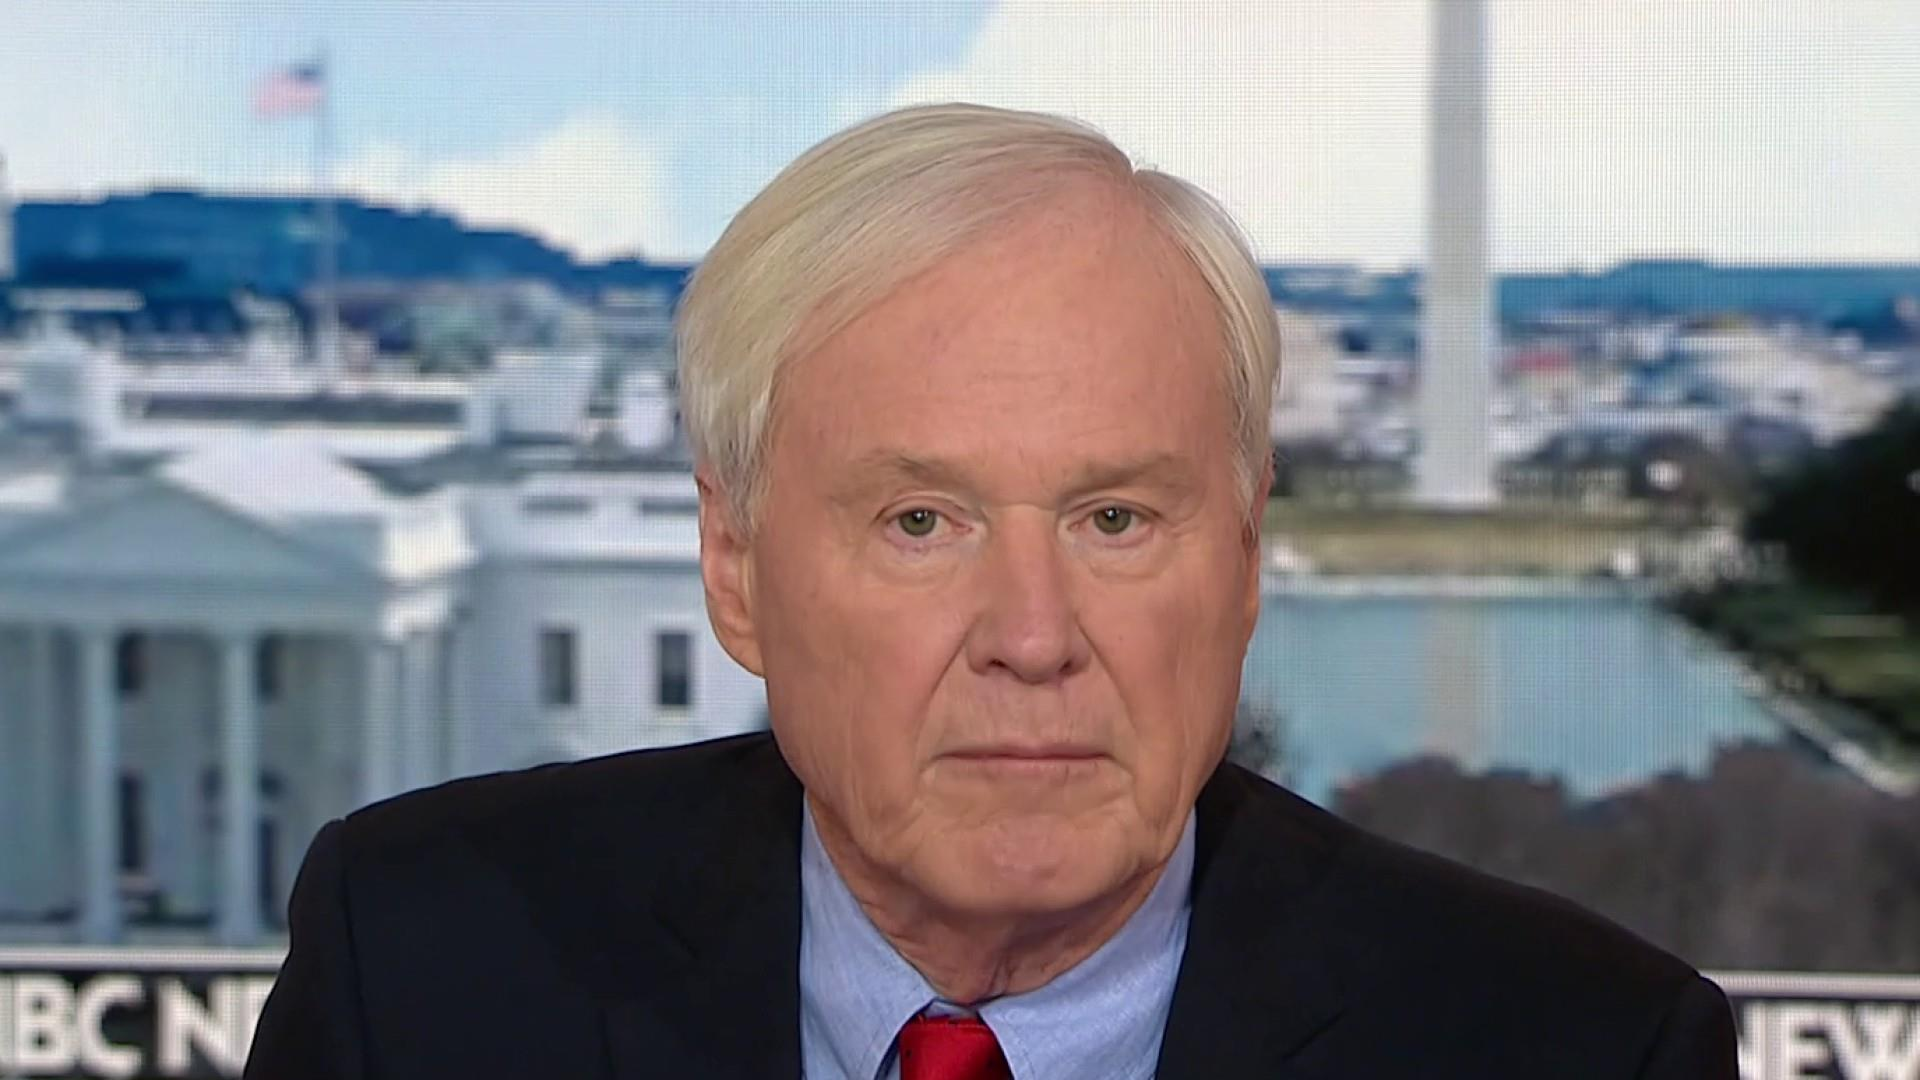 Chris Matthews on world leaders laughing at Trump: He's a joke now